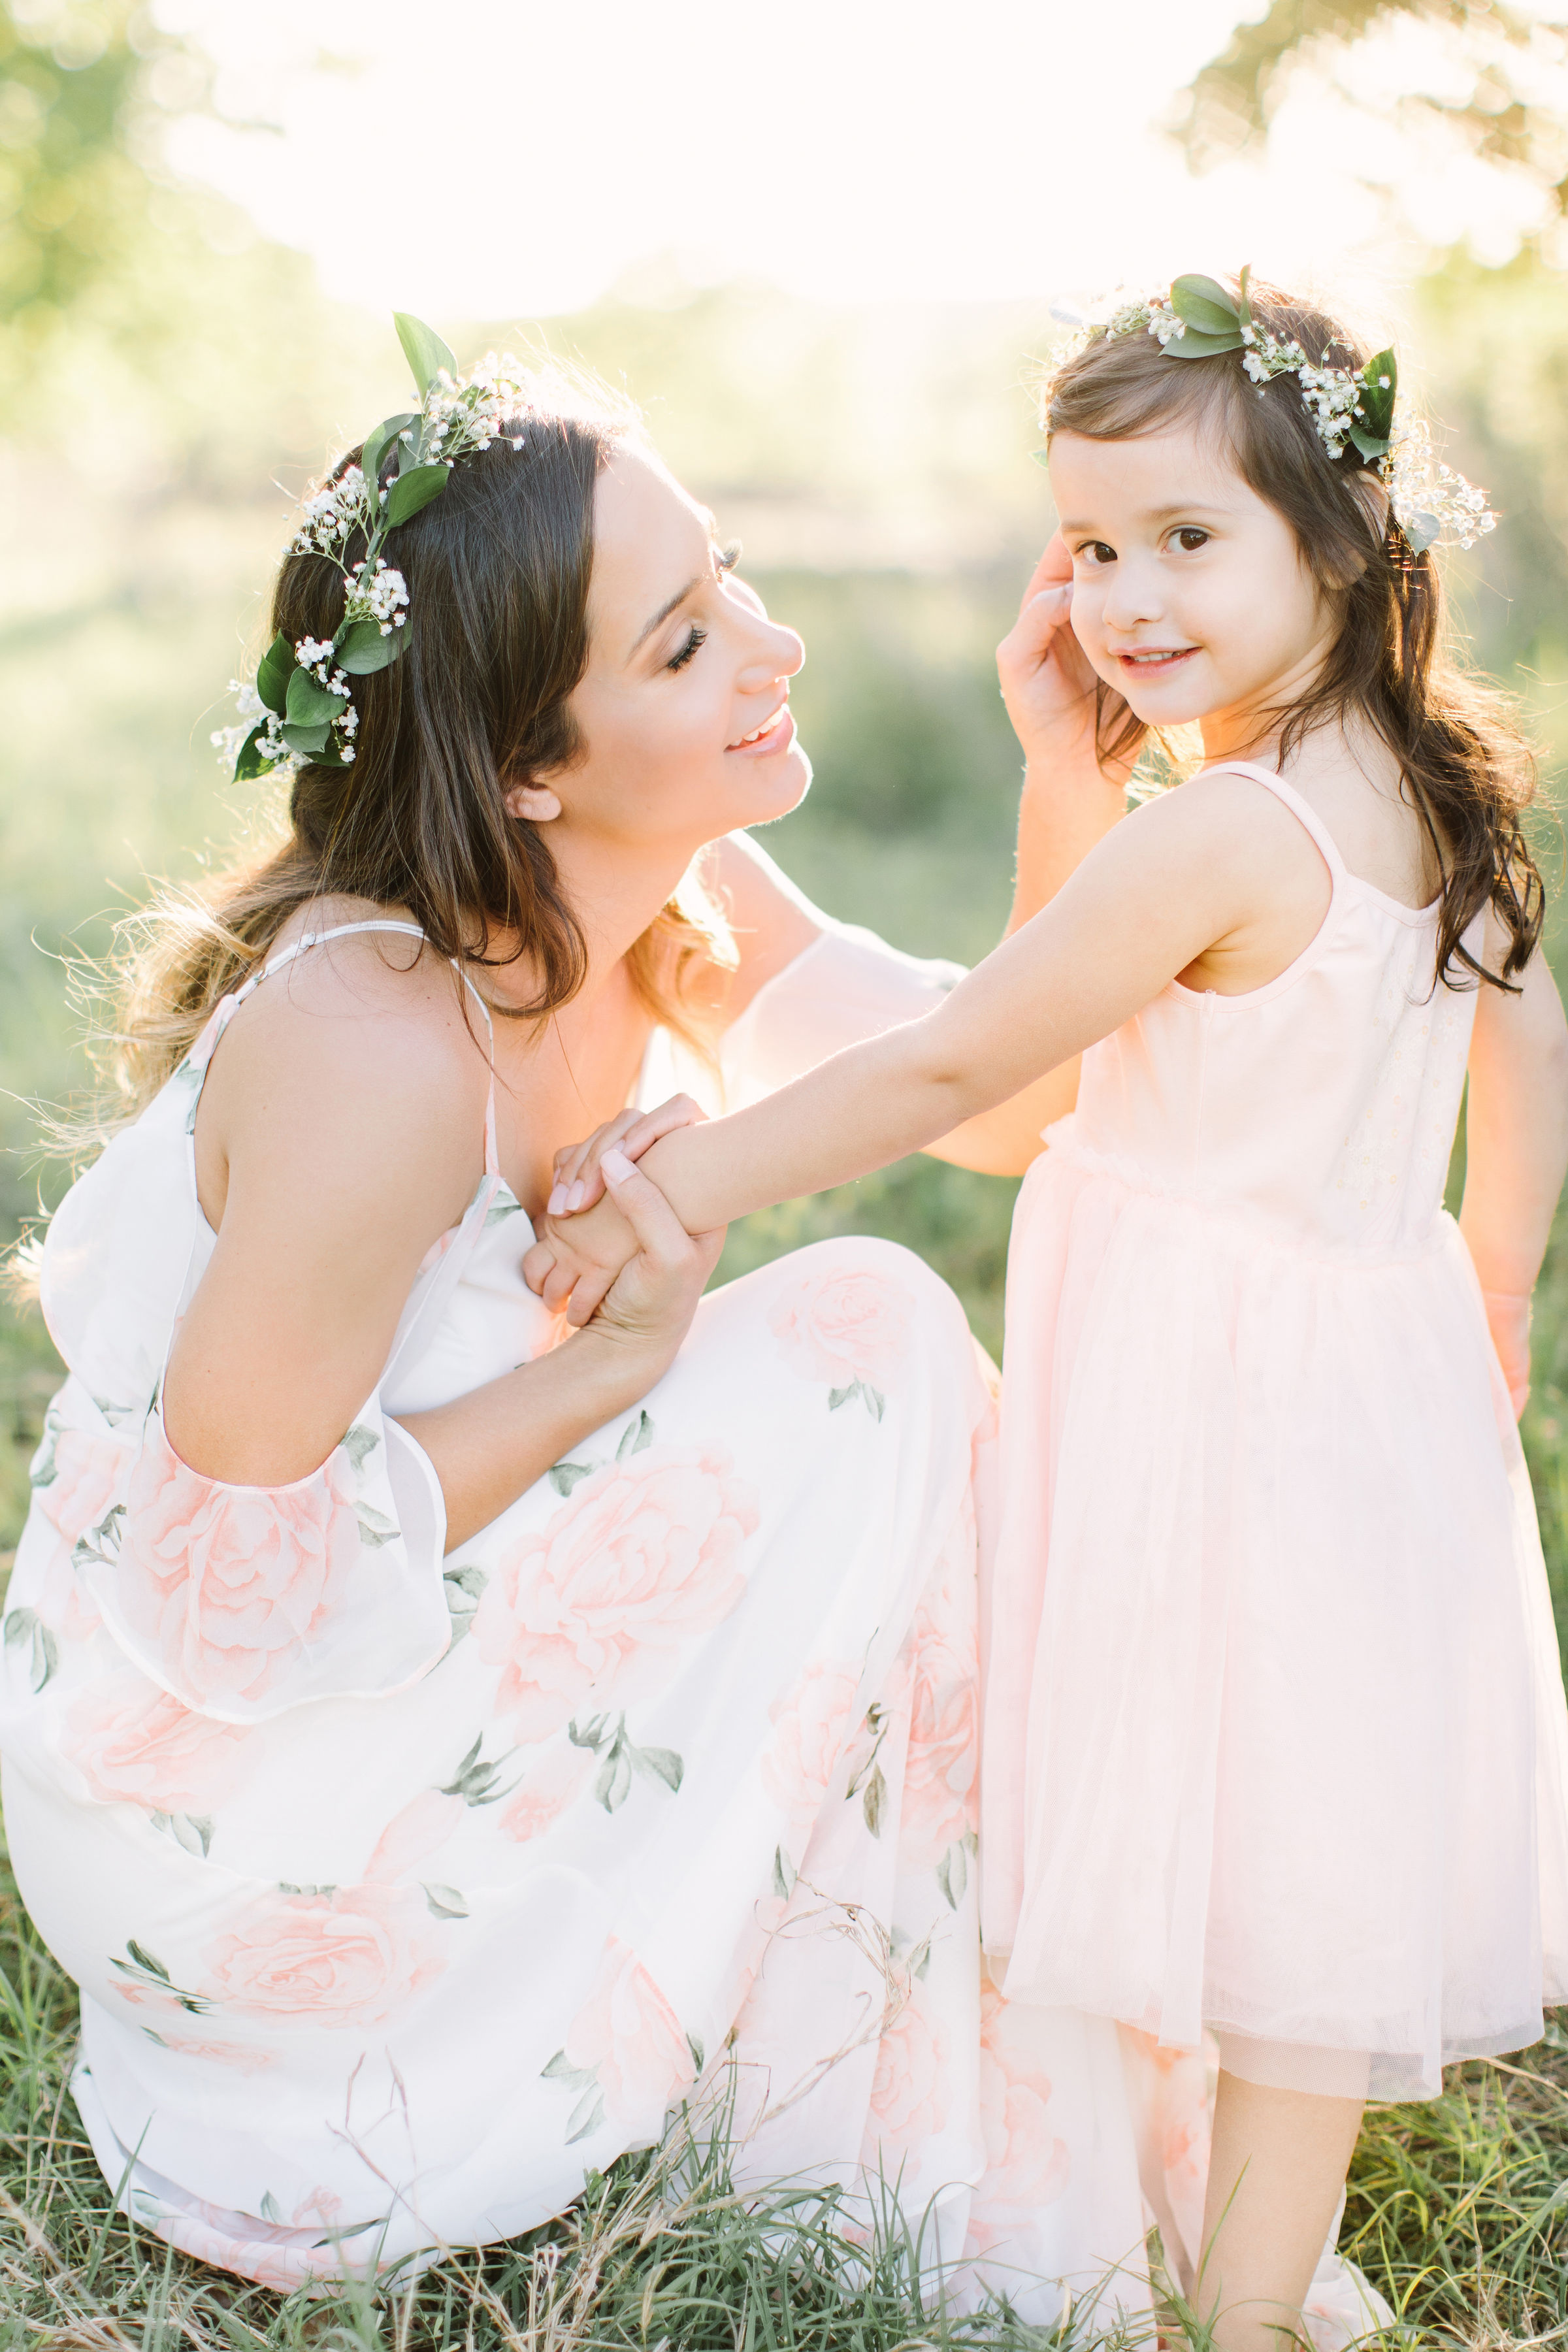 Katie Lamb, Photographer, Family, Light, Flower crown, Mother and Daughter